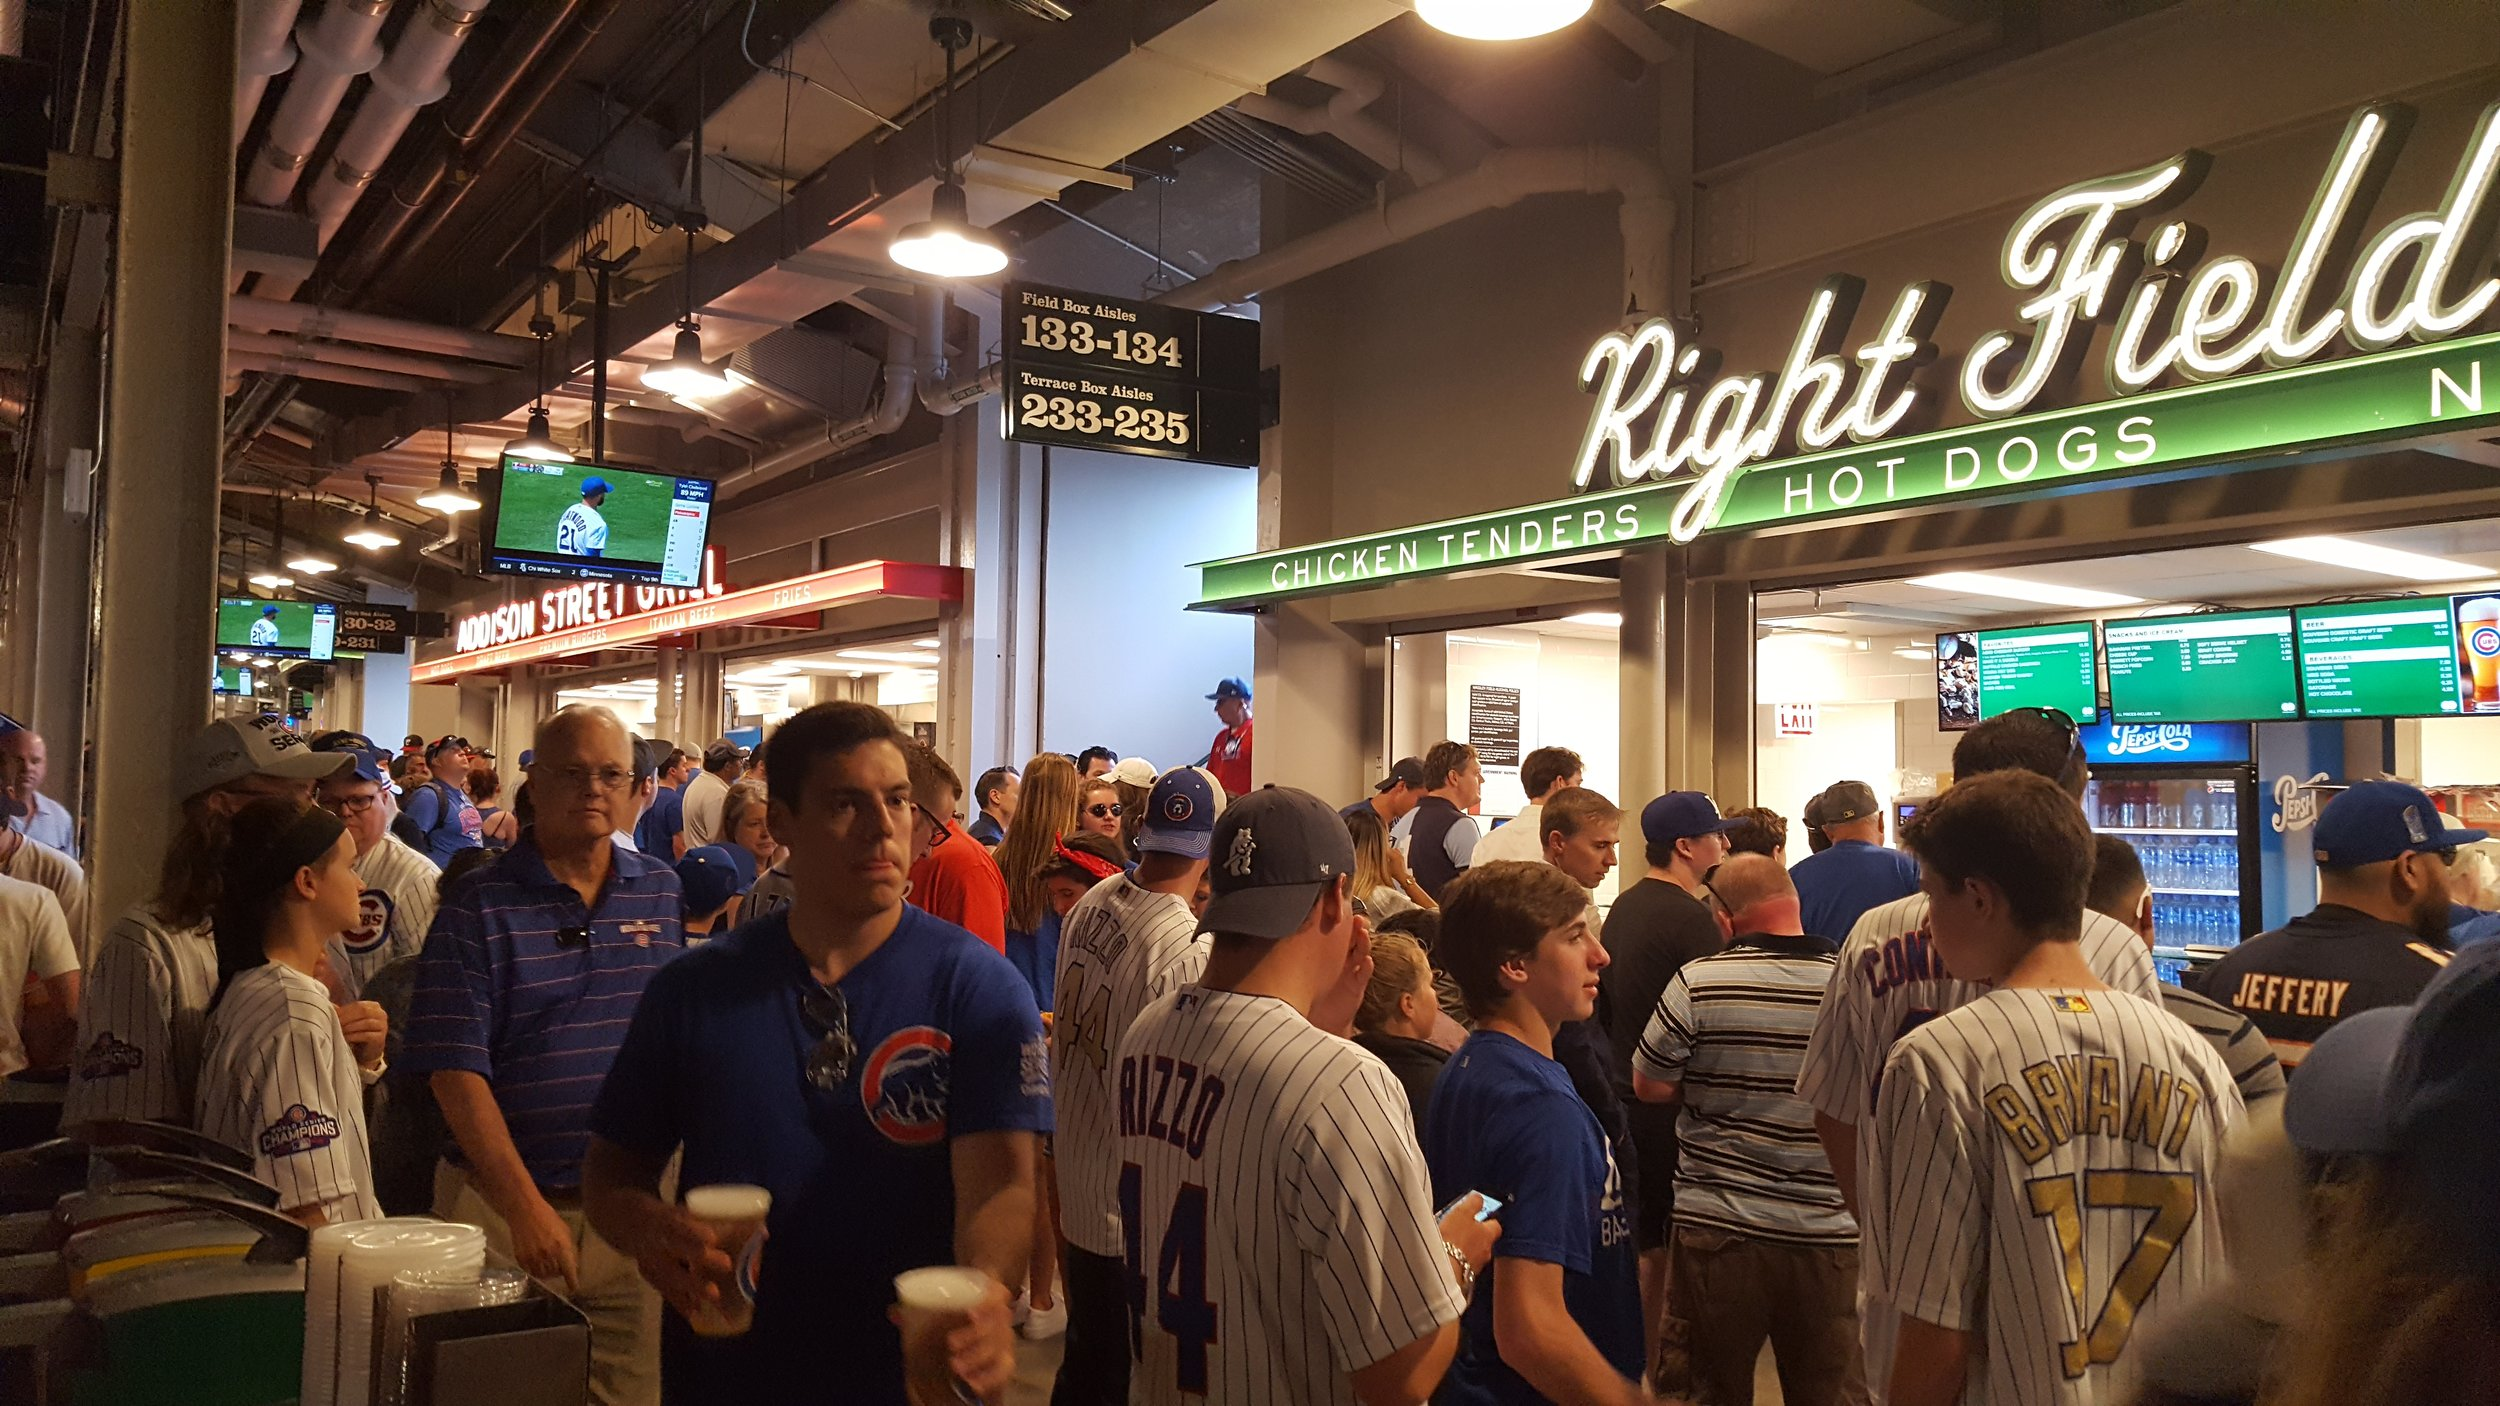 Fans crowded into the concessions area between innings, many spending the entire break in line. Those still in line after gameplay resumed kept their eyes on the overhead screens, and loud reactions from the stands caused visible frustration.